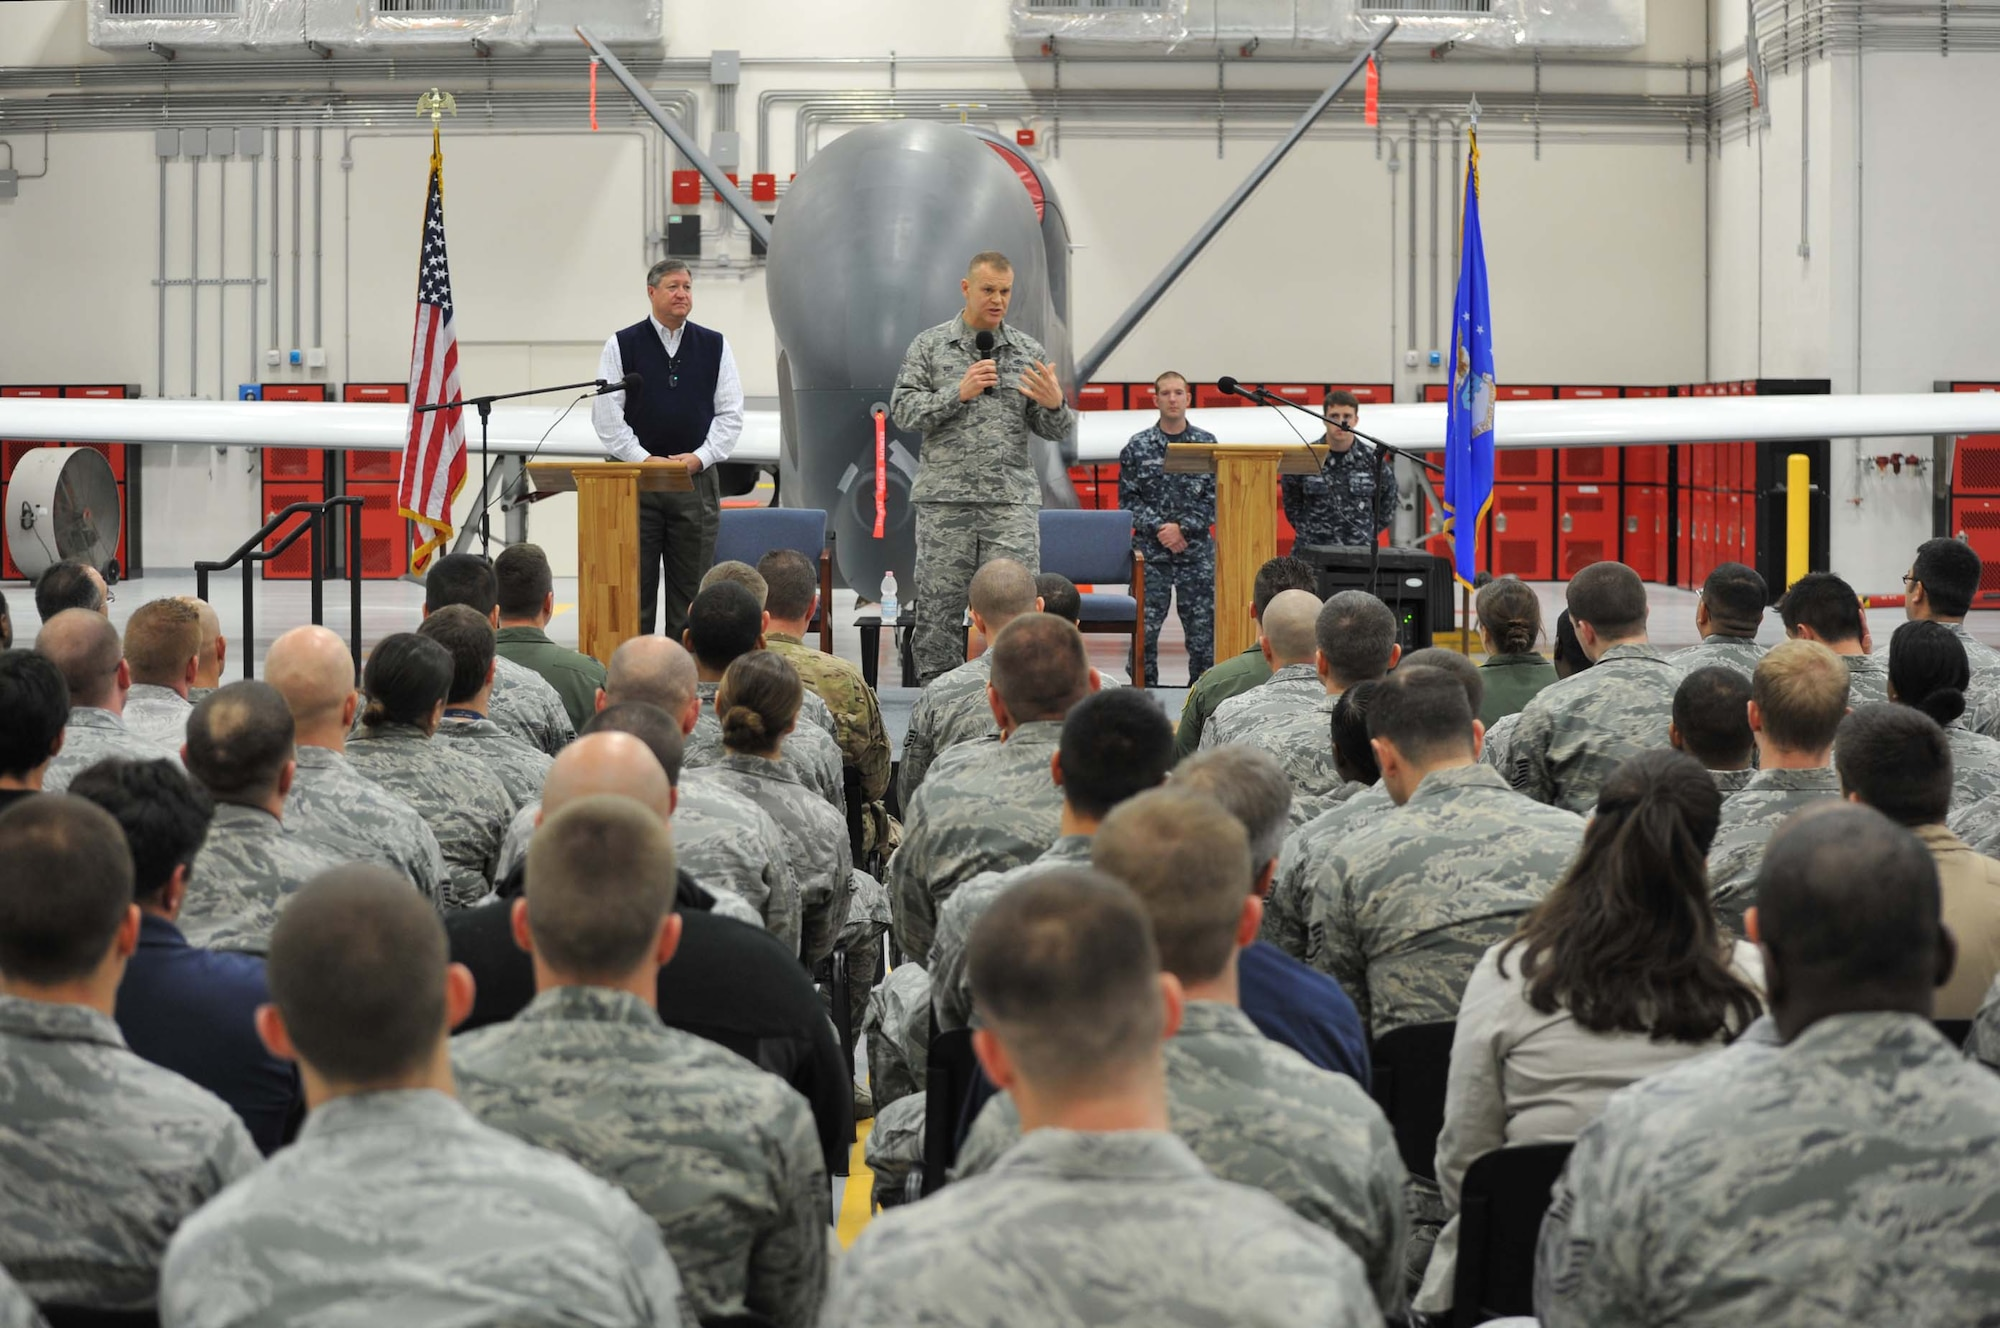 Chief Master Sgt. of the Air Force James Roy (front) and Secretary of the Air Force Michael Donley answer questions during an Airman's call at Naval Air Station Sigonella, Dec. 27, 2012. Donley and Roy visited Sigonella as part of a multi-base tour to meet with Airmen and deployed service members within the European and Central Command areas of responsibility. (Photo/Machinery Repairman 1st Class Gary W. Spence)